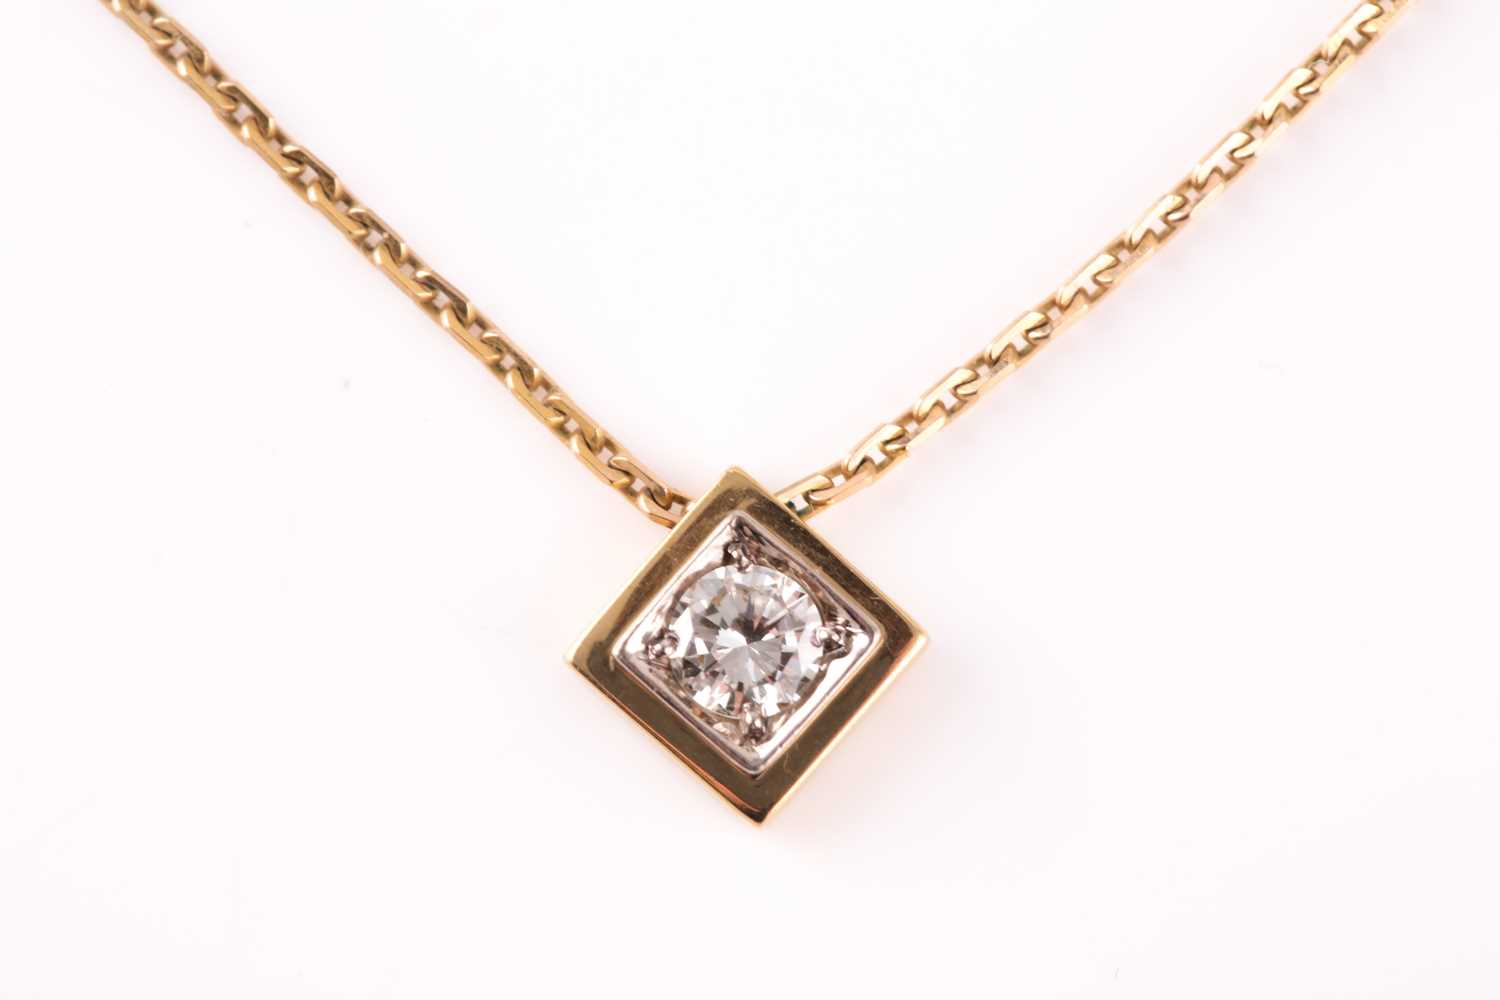 A solitaire diamond pendant, set with a round brilliant-cut diamond of approximately 0.33 carats,